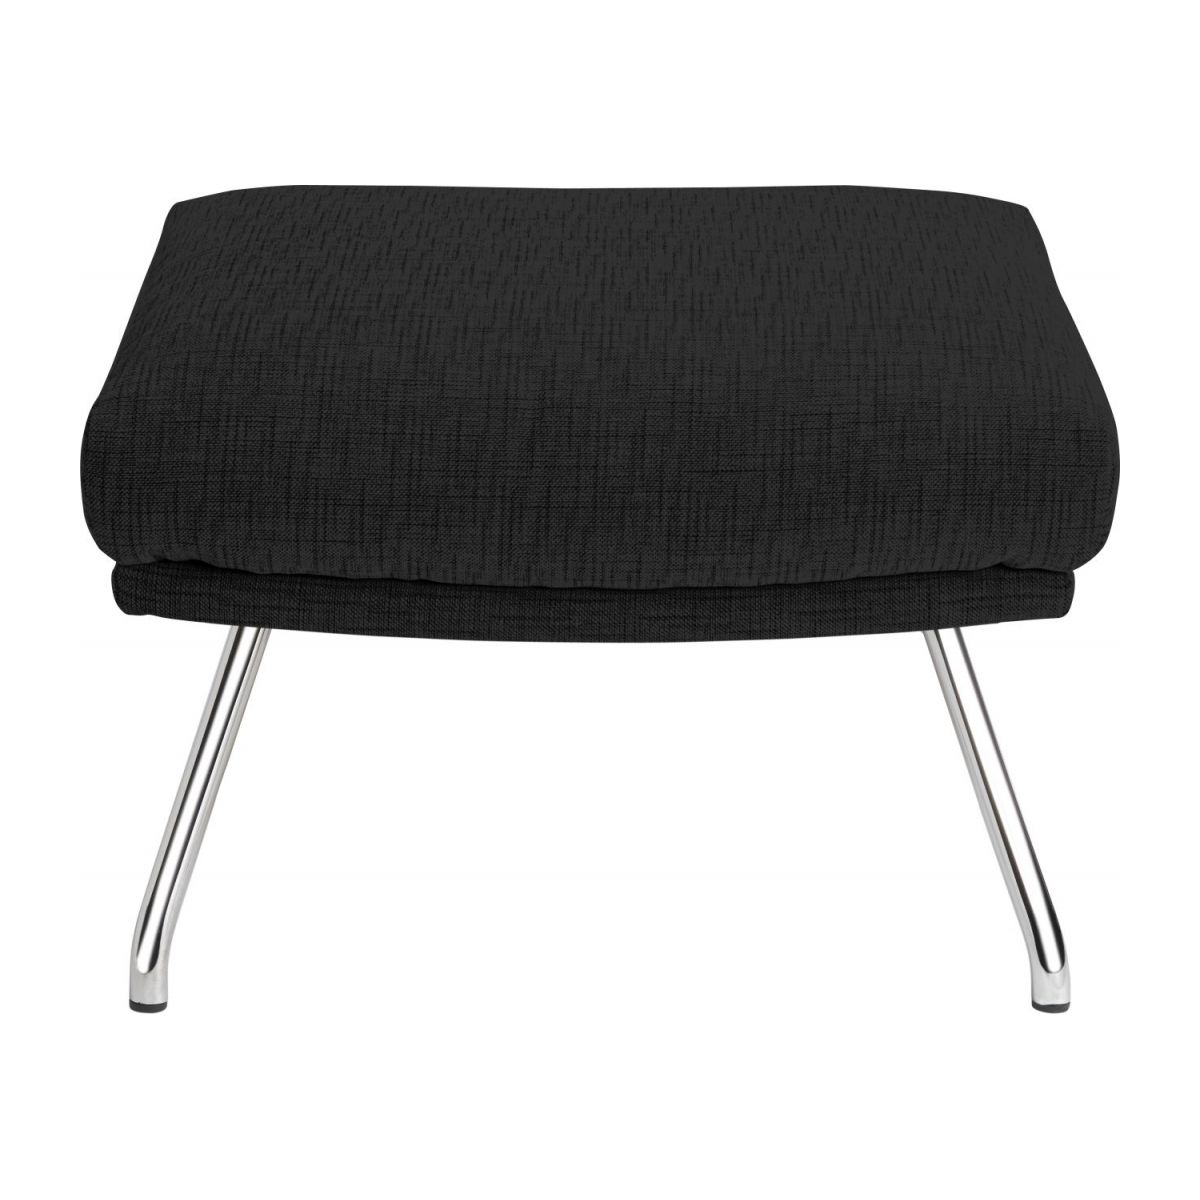 Footstool in Ancio fabric, nero with chromed metal legs n°2